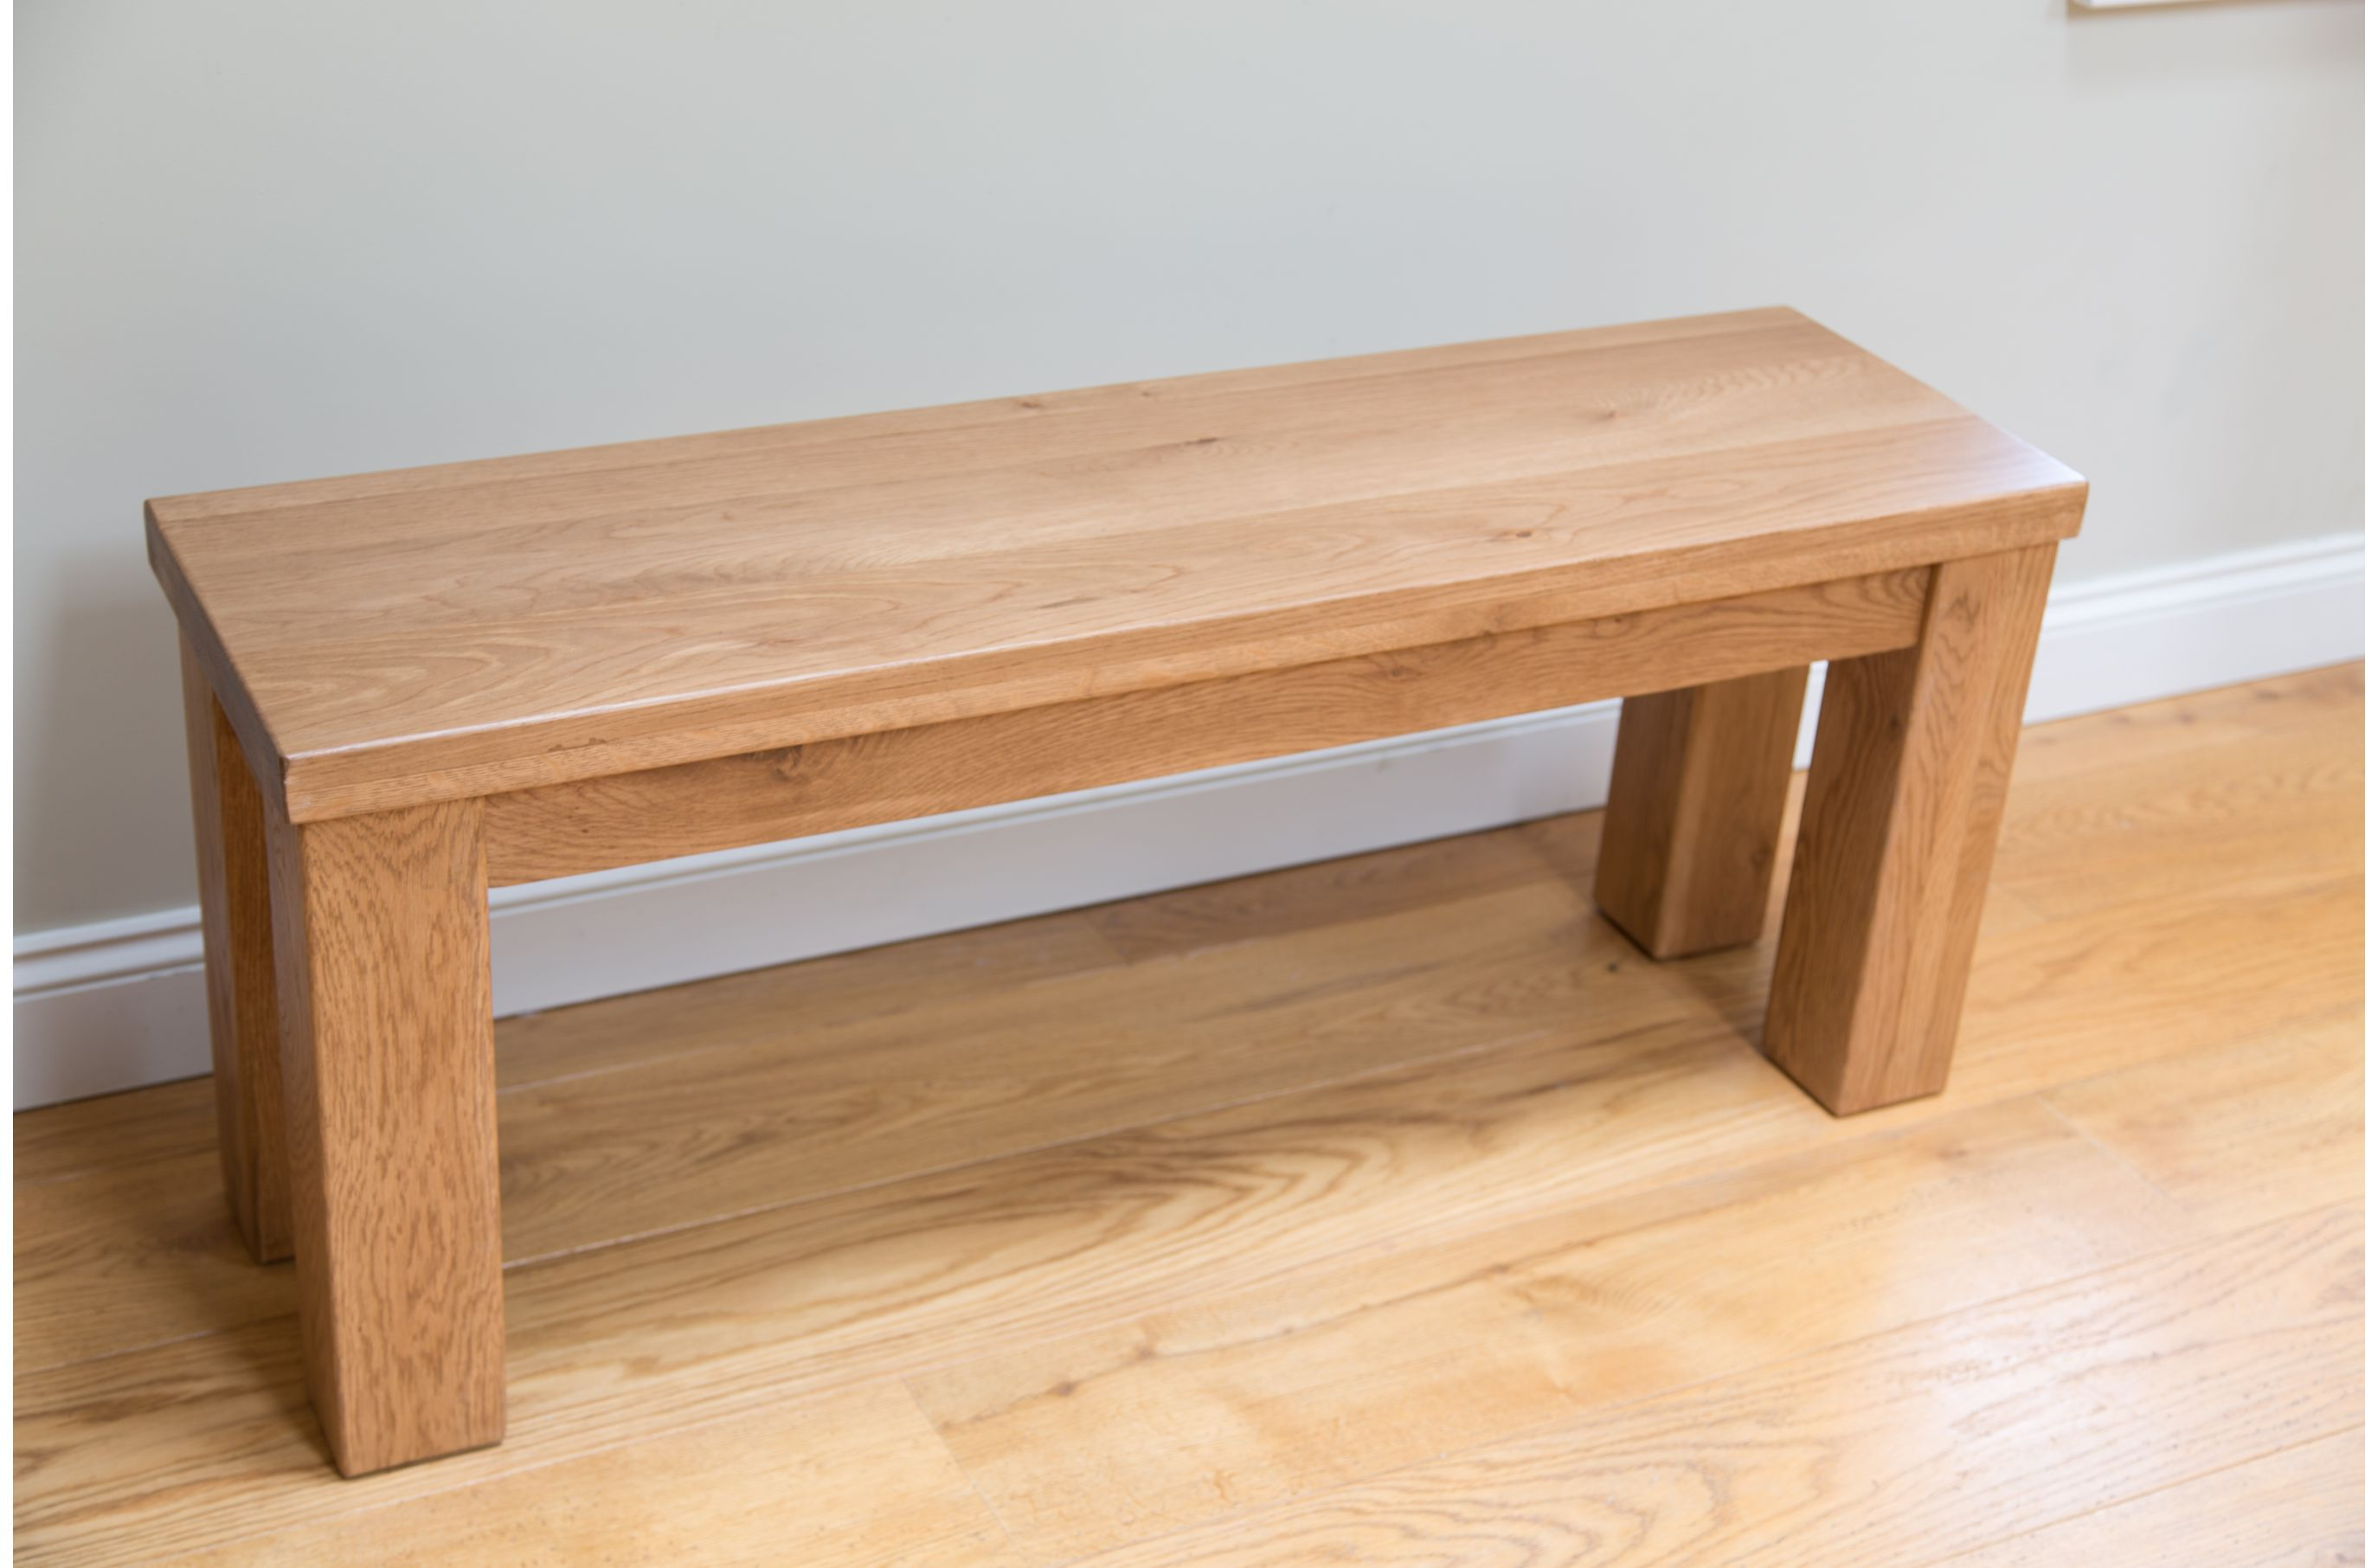 Gentil Another Entryway Bench Idea, I Like The Thick Legs Wooden Dining Bench, Oak  Bench